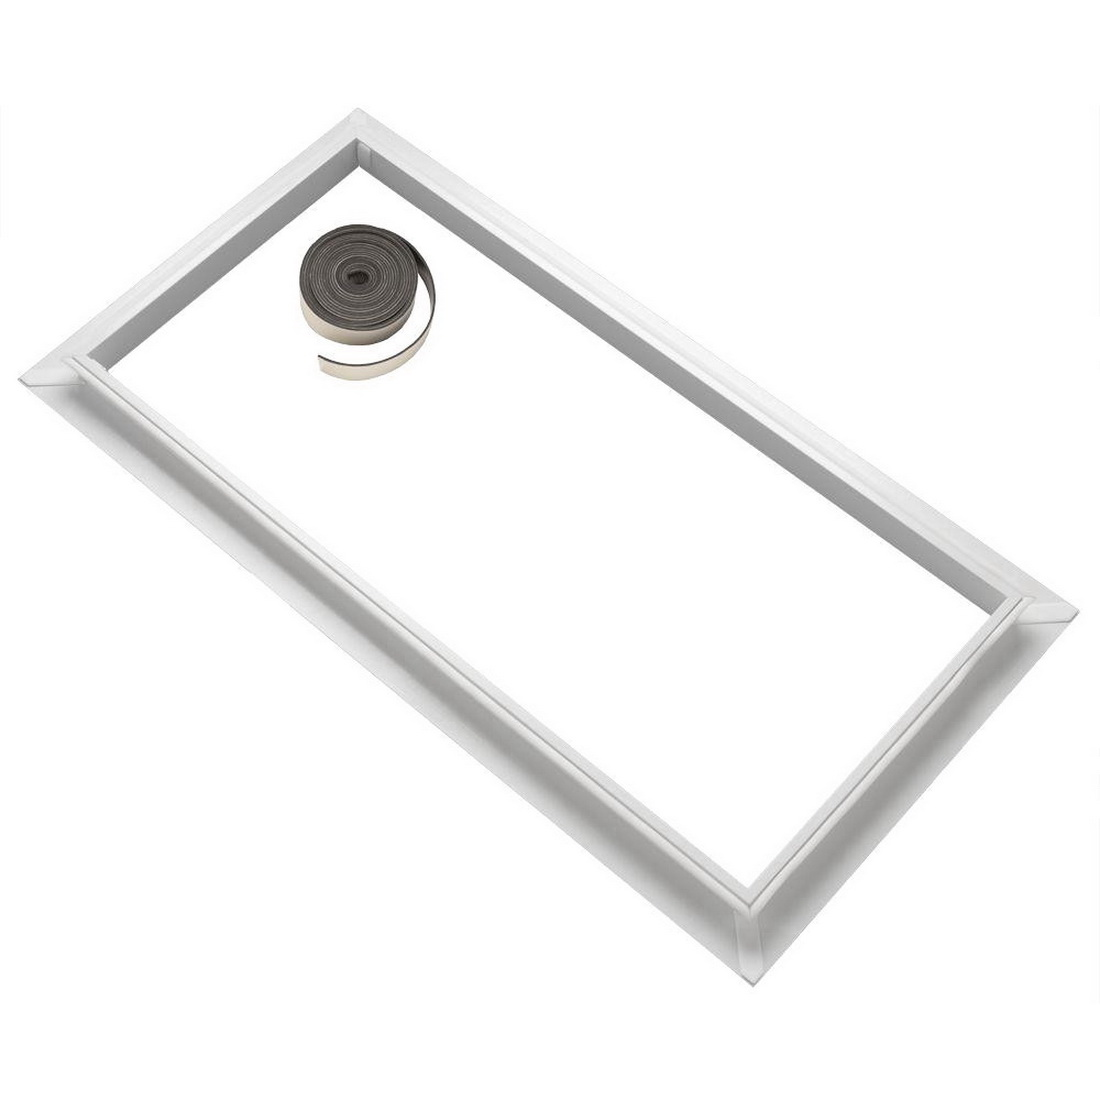 Velux Skylight Accessory Tray To Fit Blind to FCM White ZZZ 199 3434